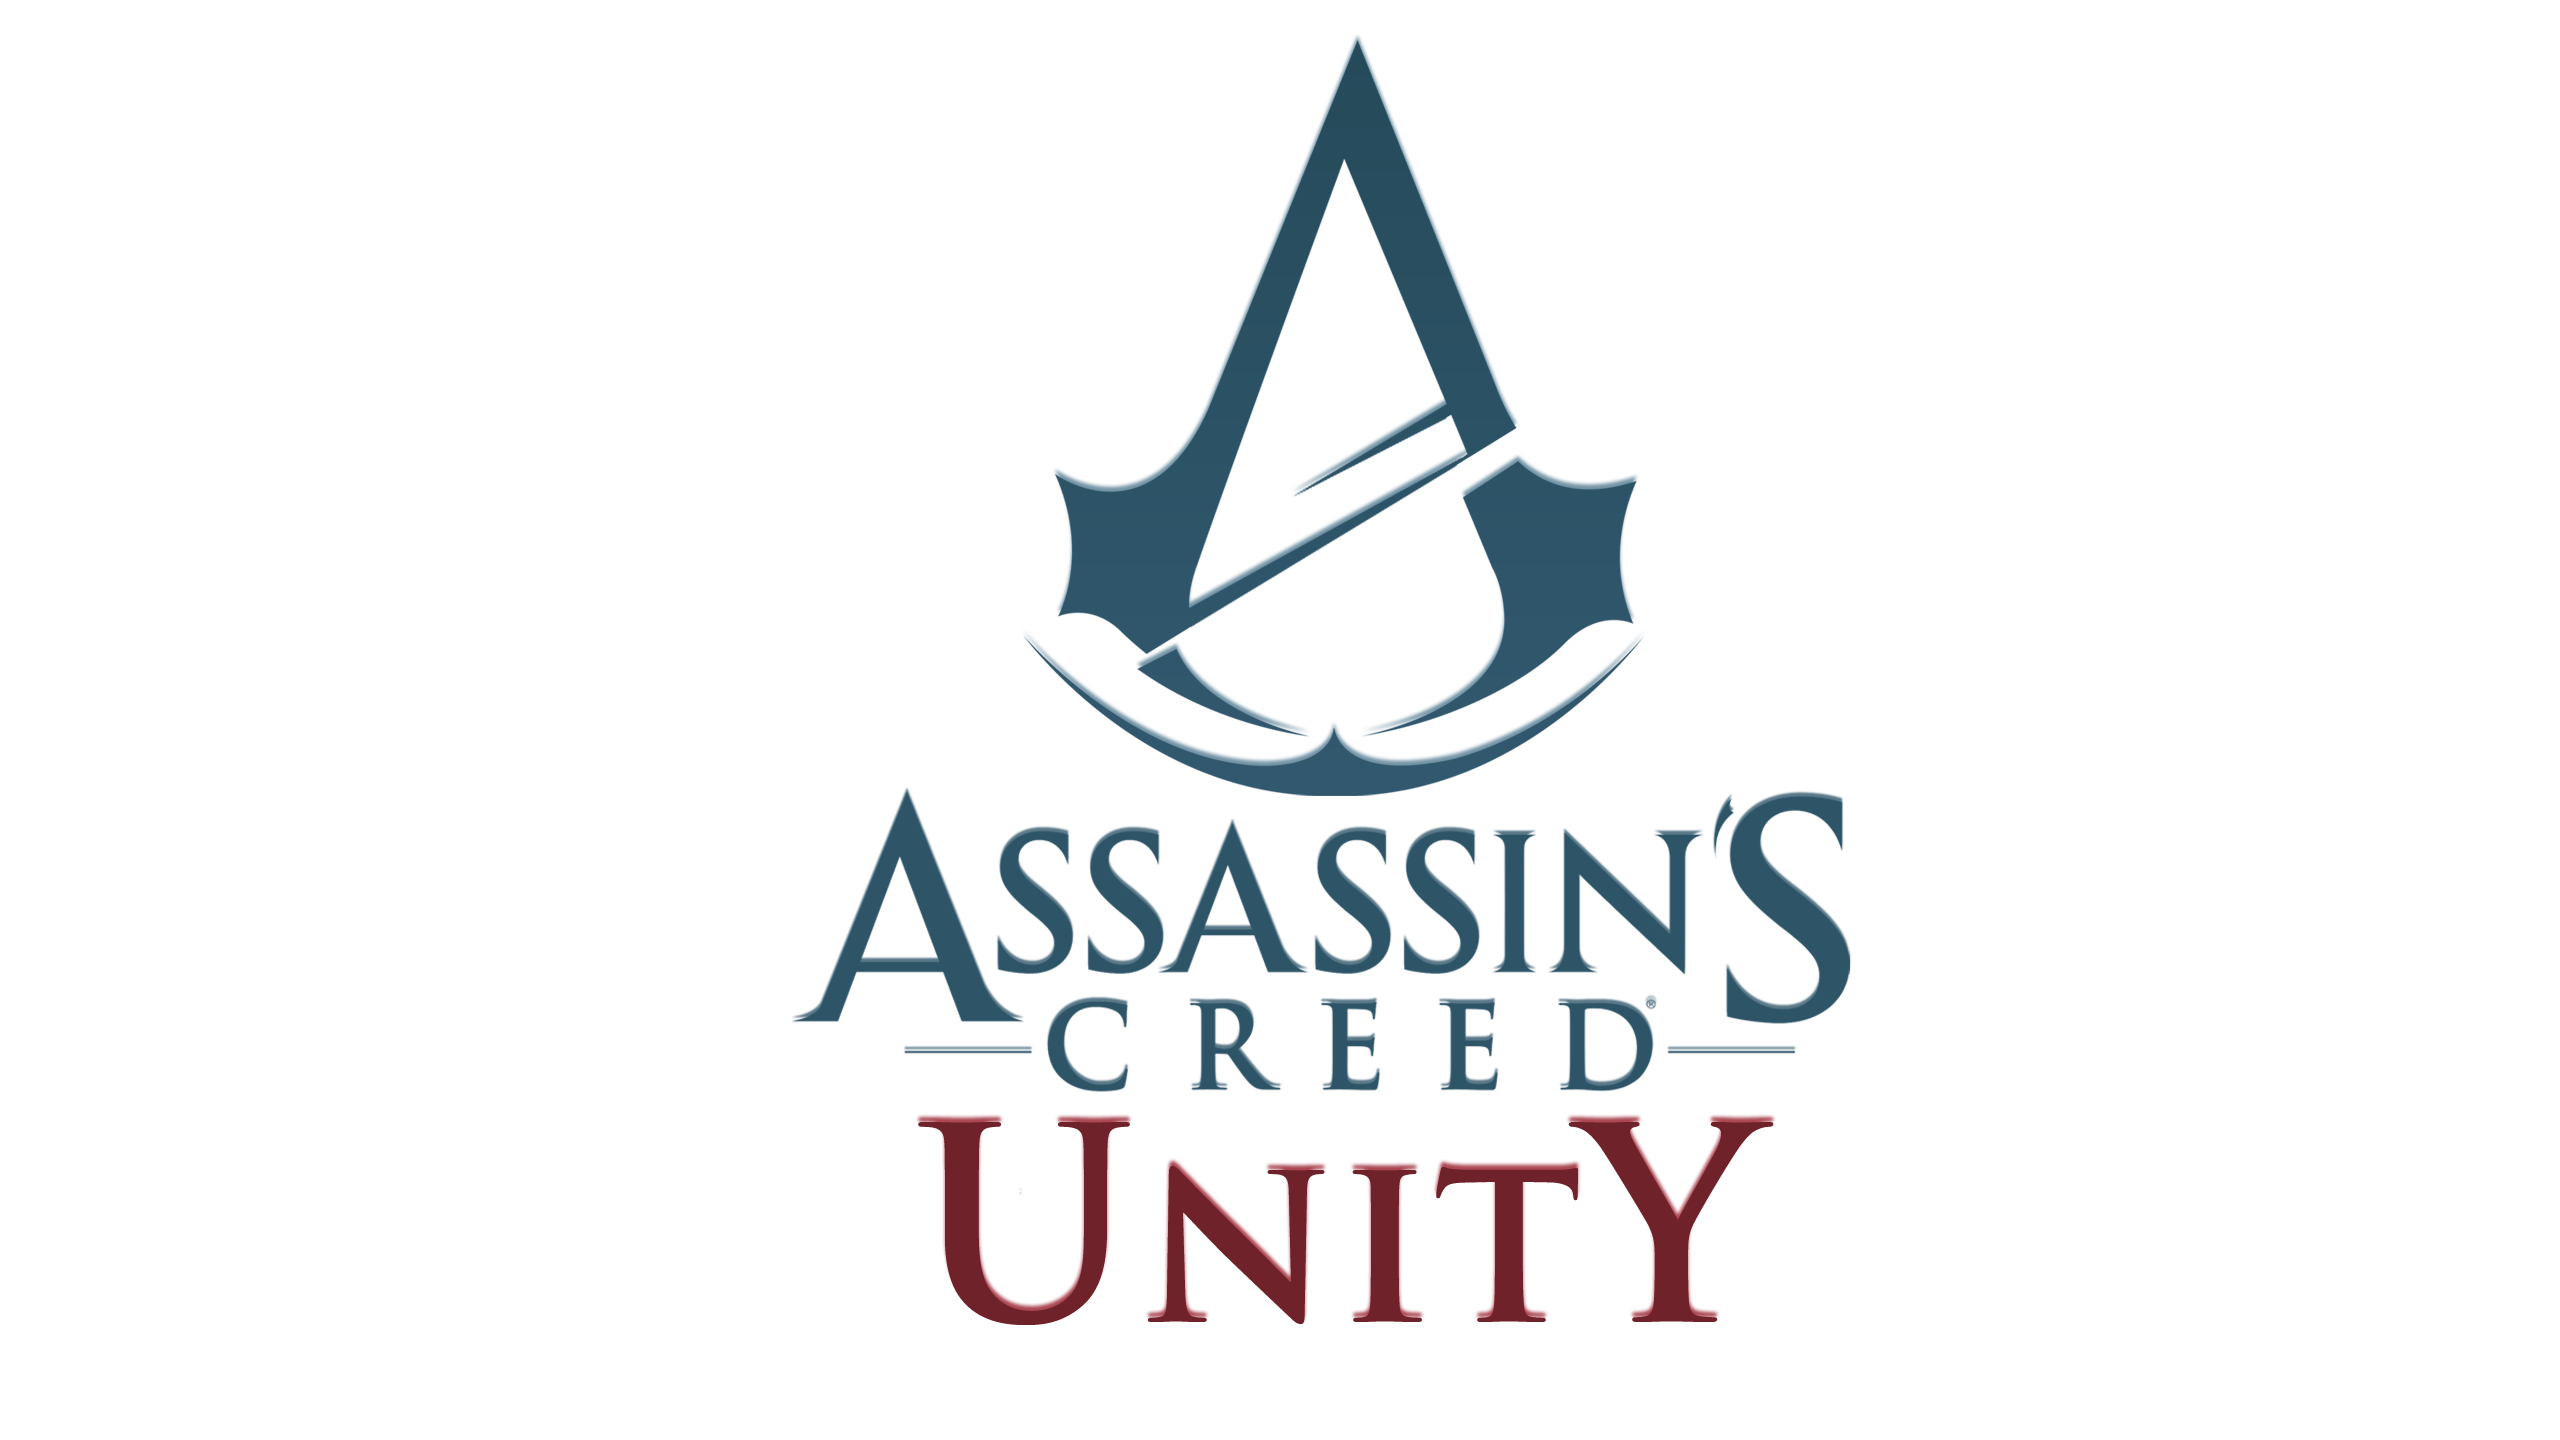 Assassin S Creed Unity Logo Transparent By Youknowwho77 On